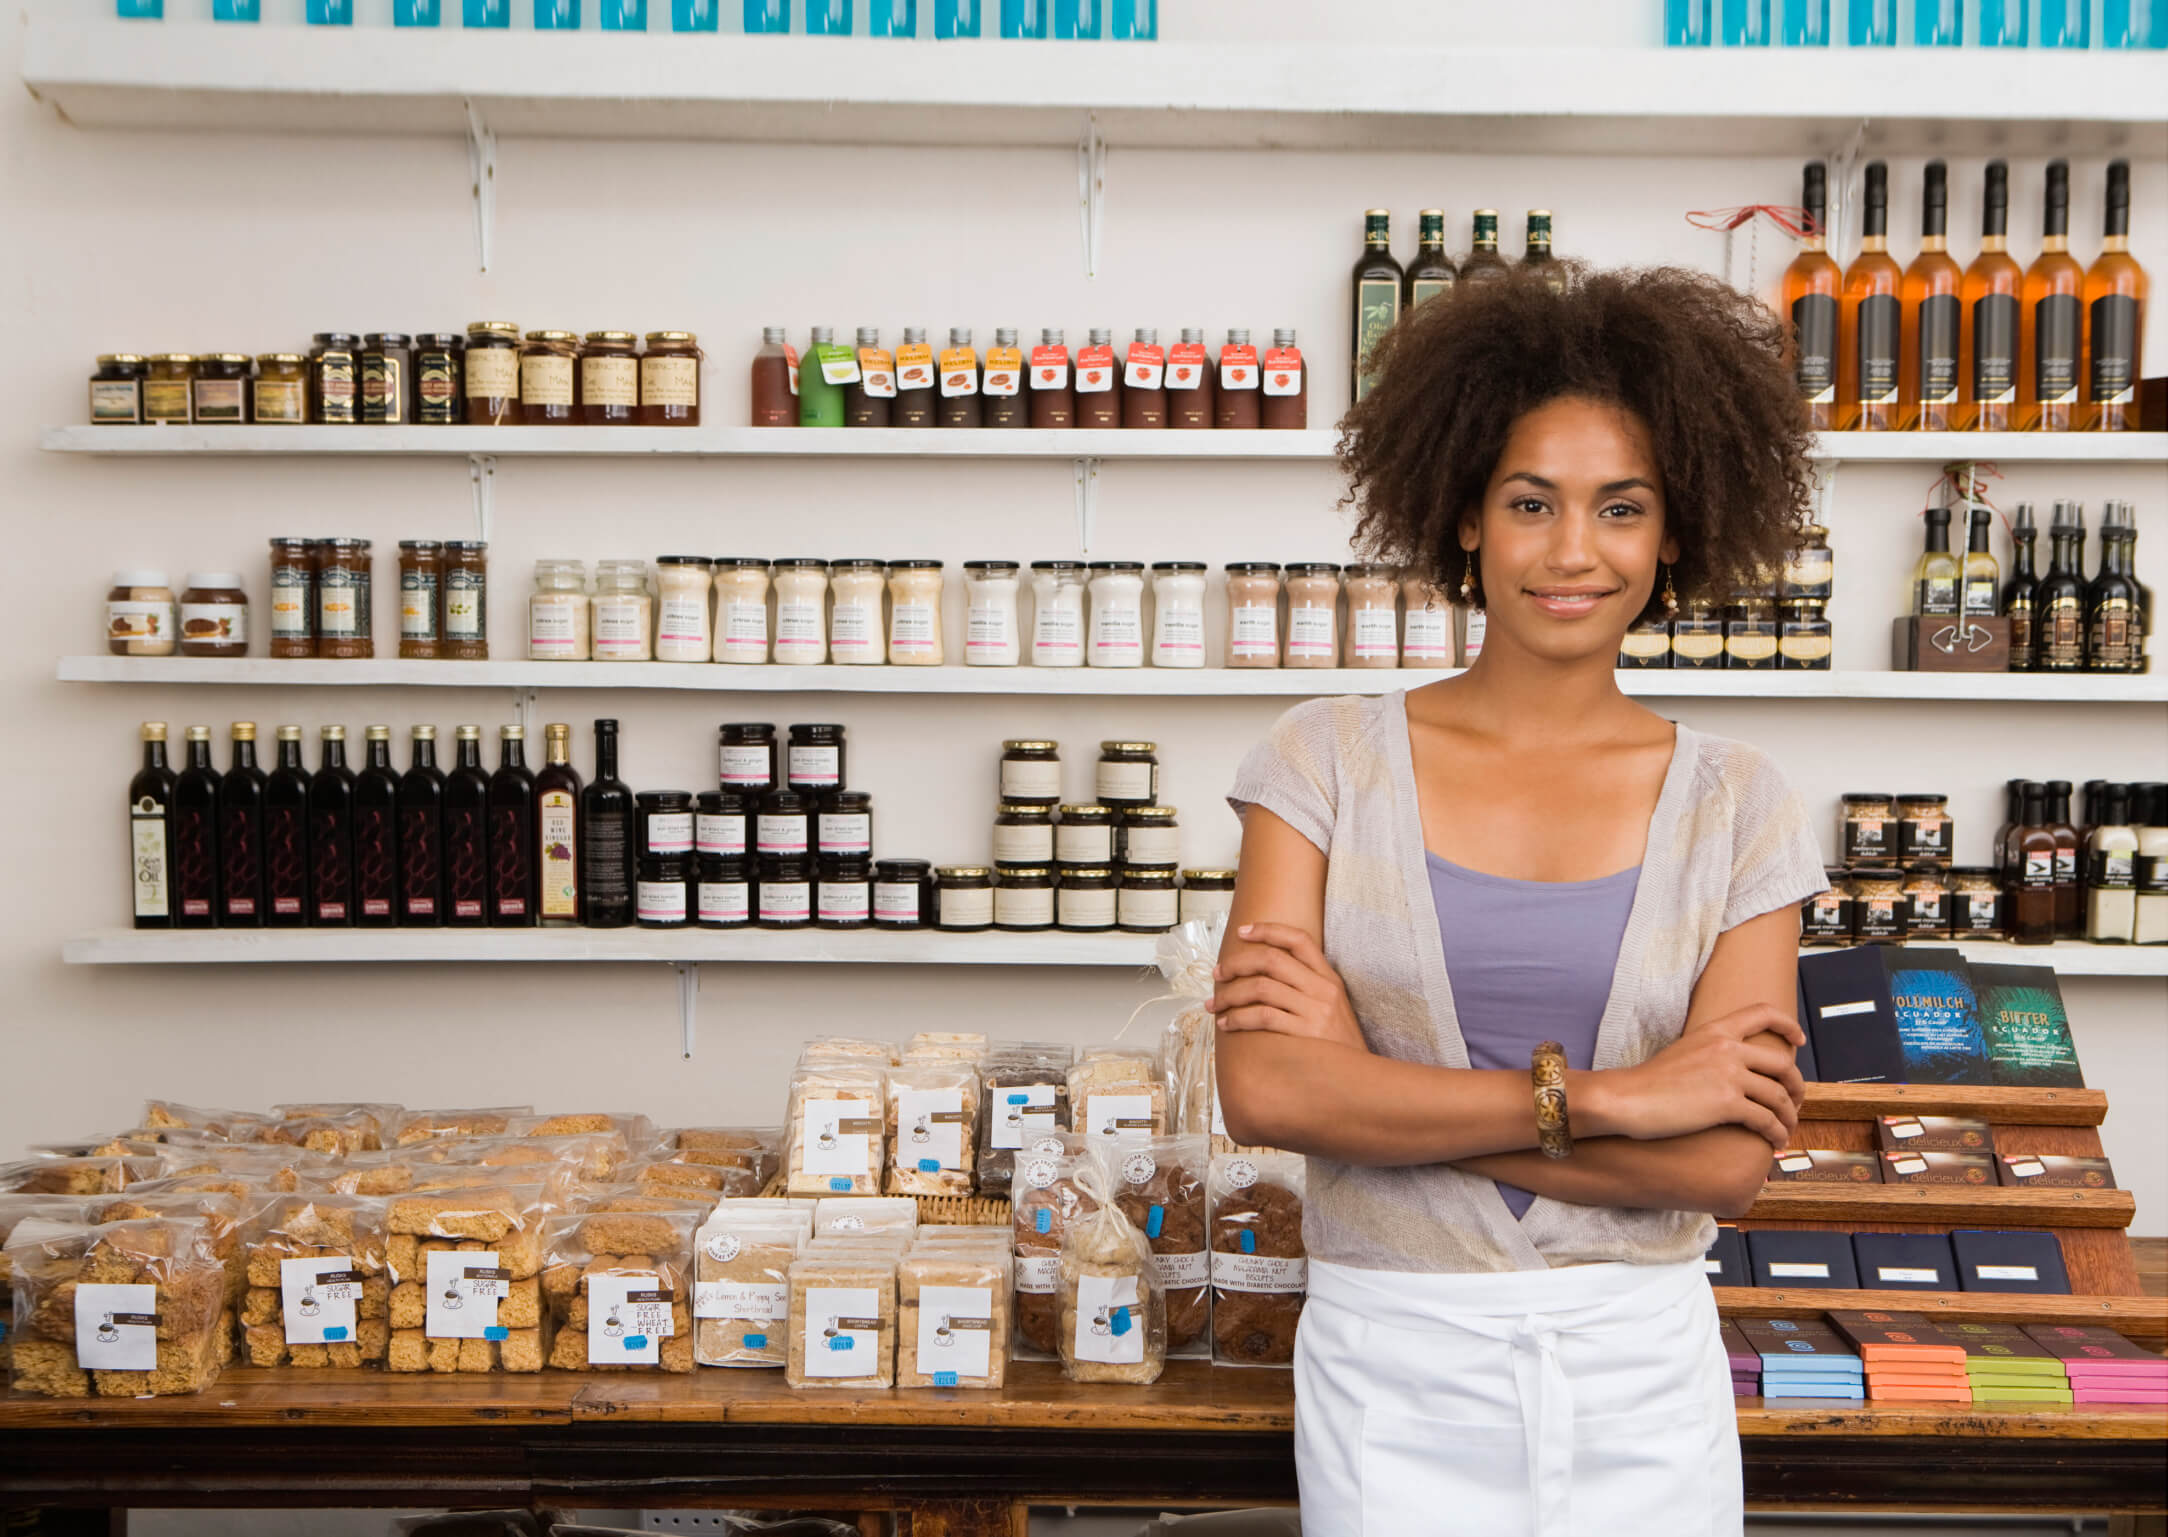 Join our BLK Owned Business directory of kick a$$ womenpreneurs! - An exclusive business directory that showcases women of color in business, who offer exceptional products. Apply to be considered.